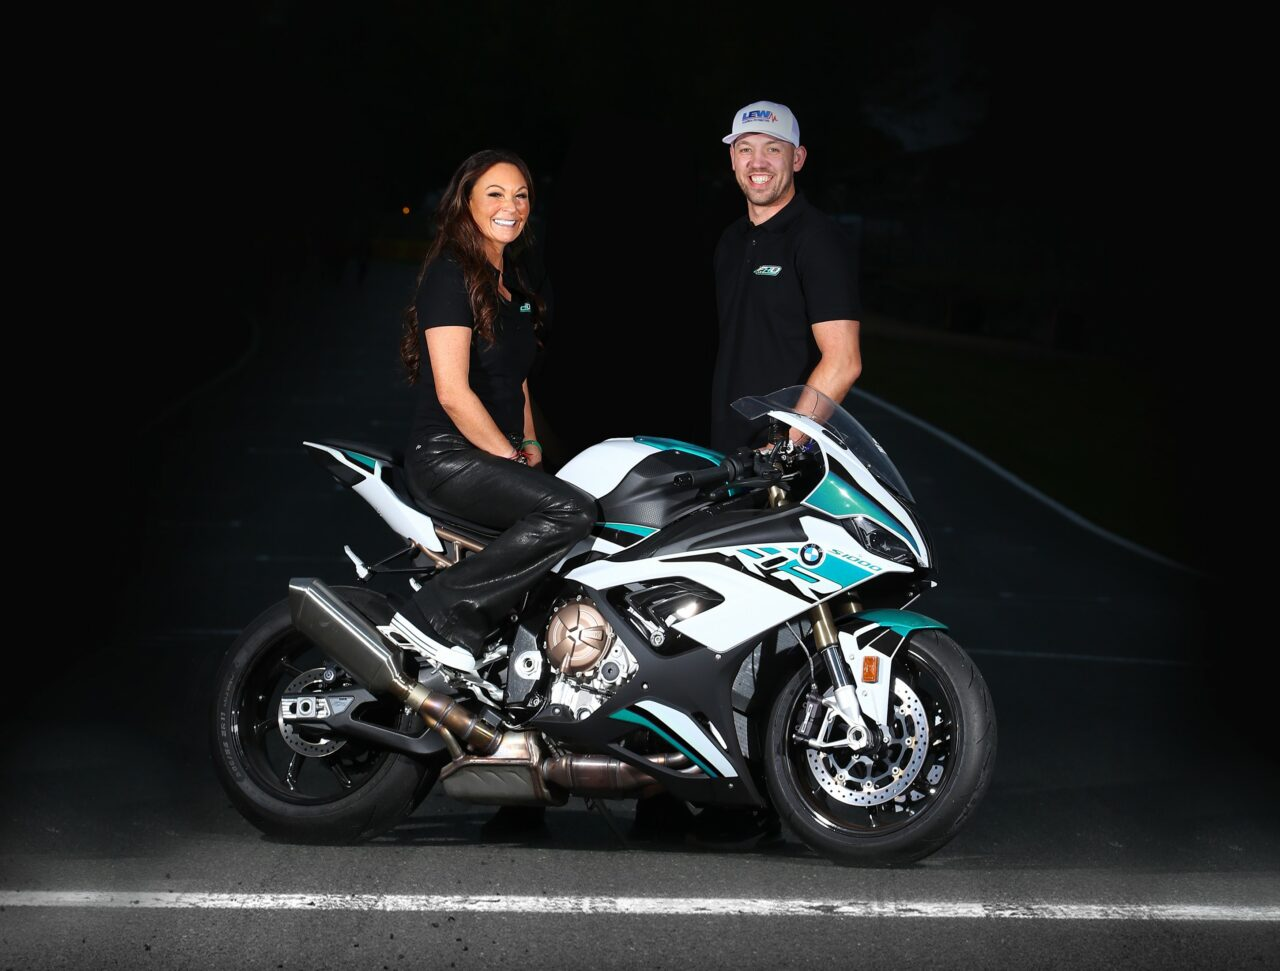 Road racer Peter Hickman ready for 2021